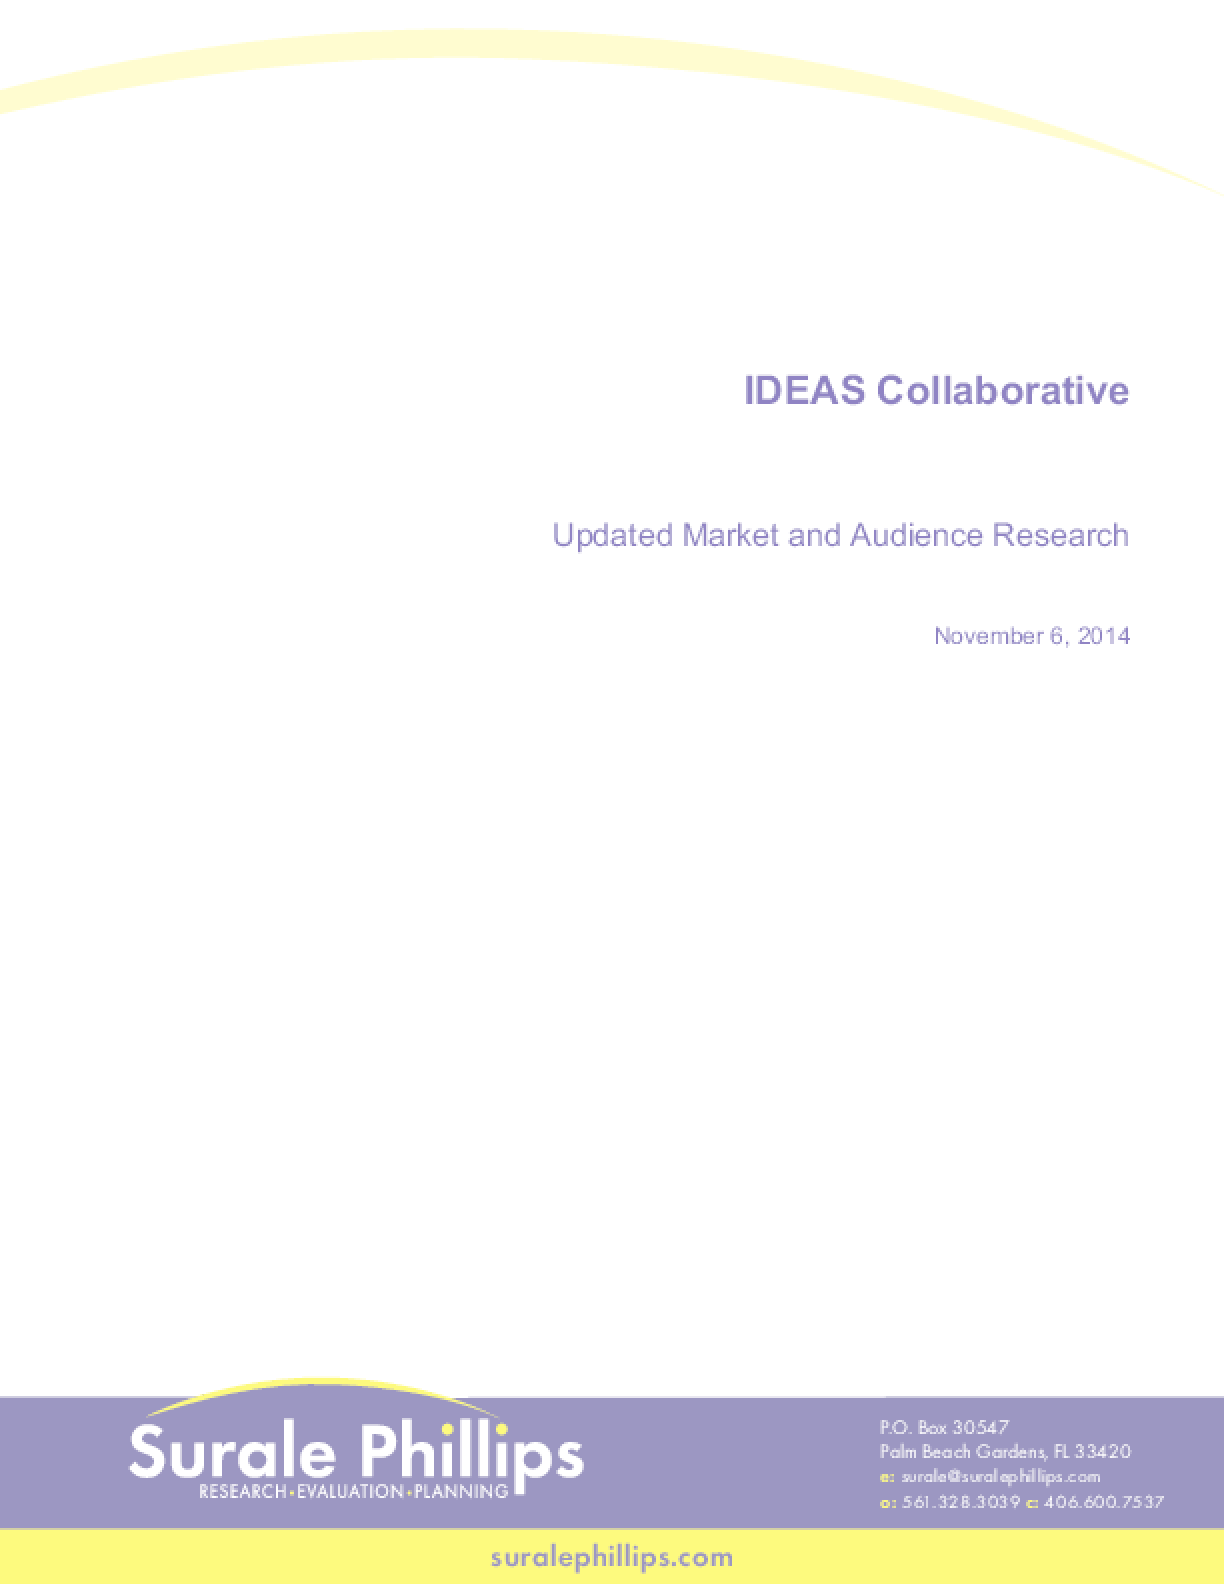 IDEAS Collaborative: Updated Market and Audience Research